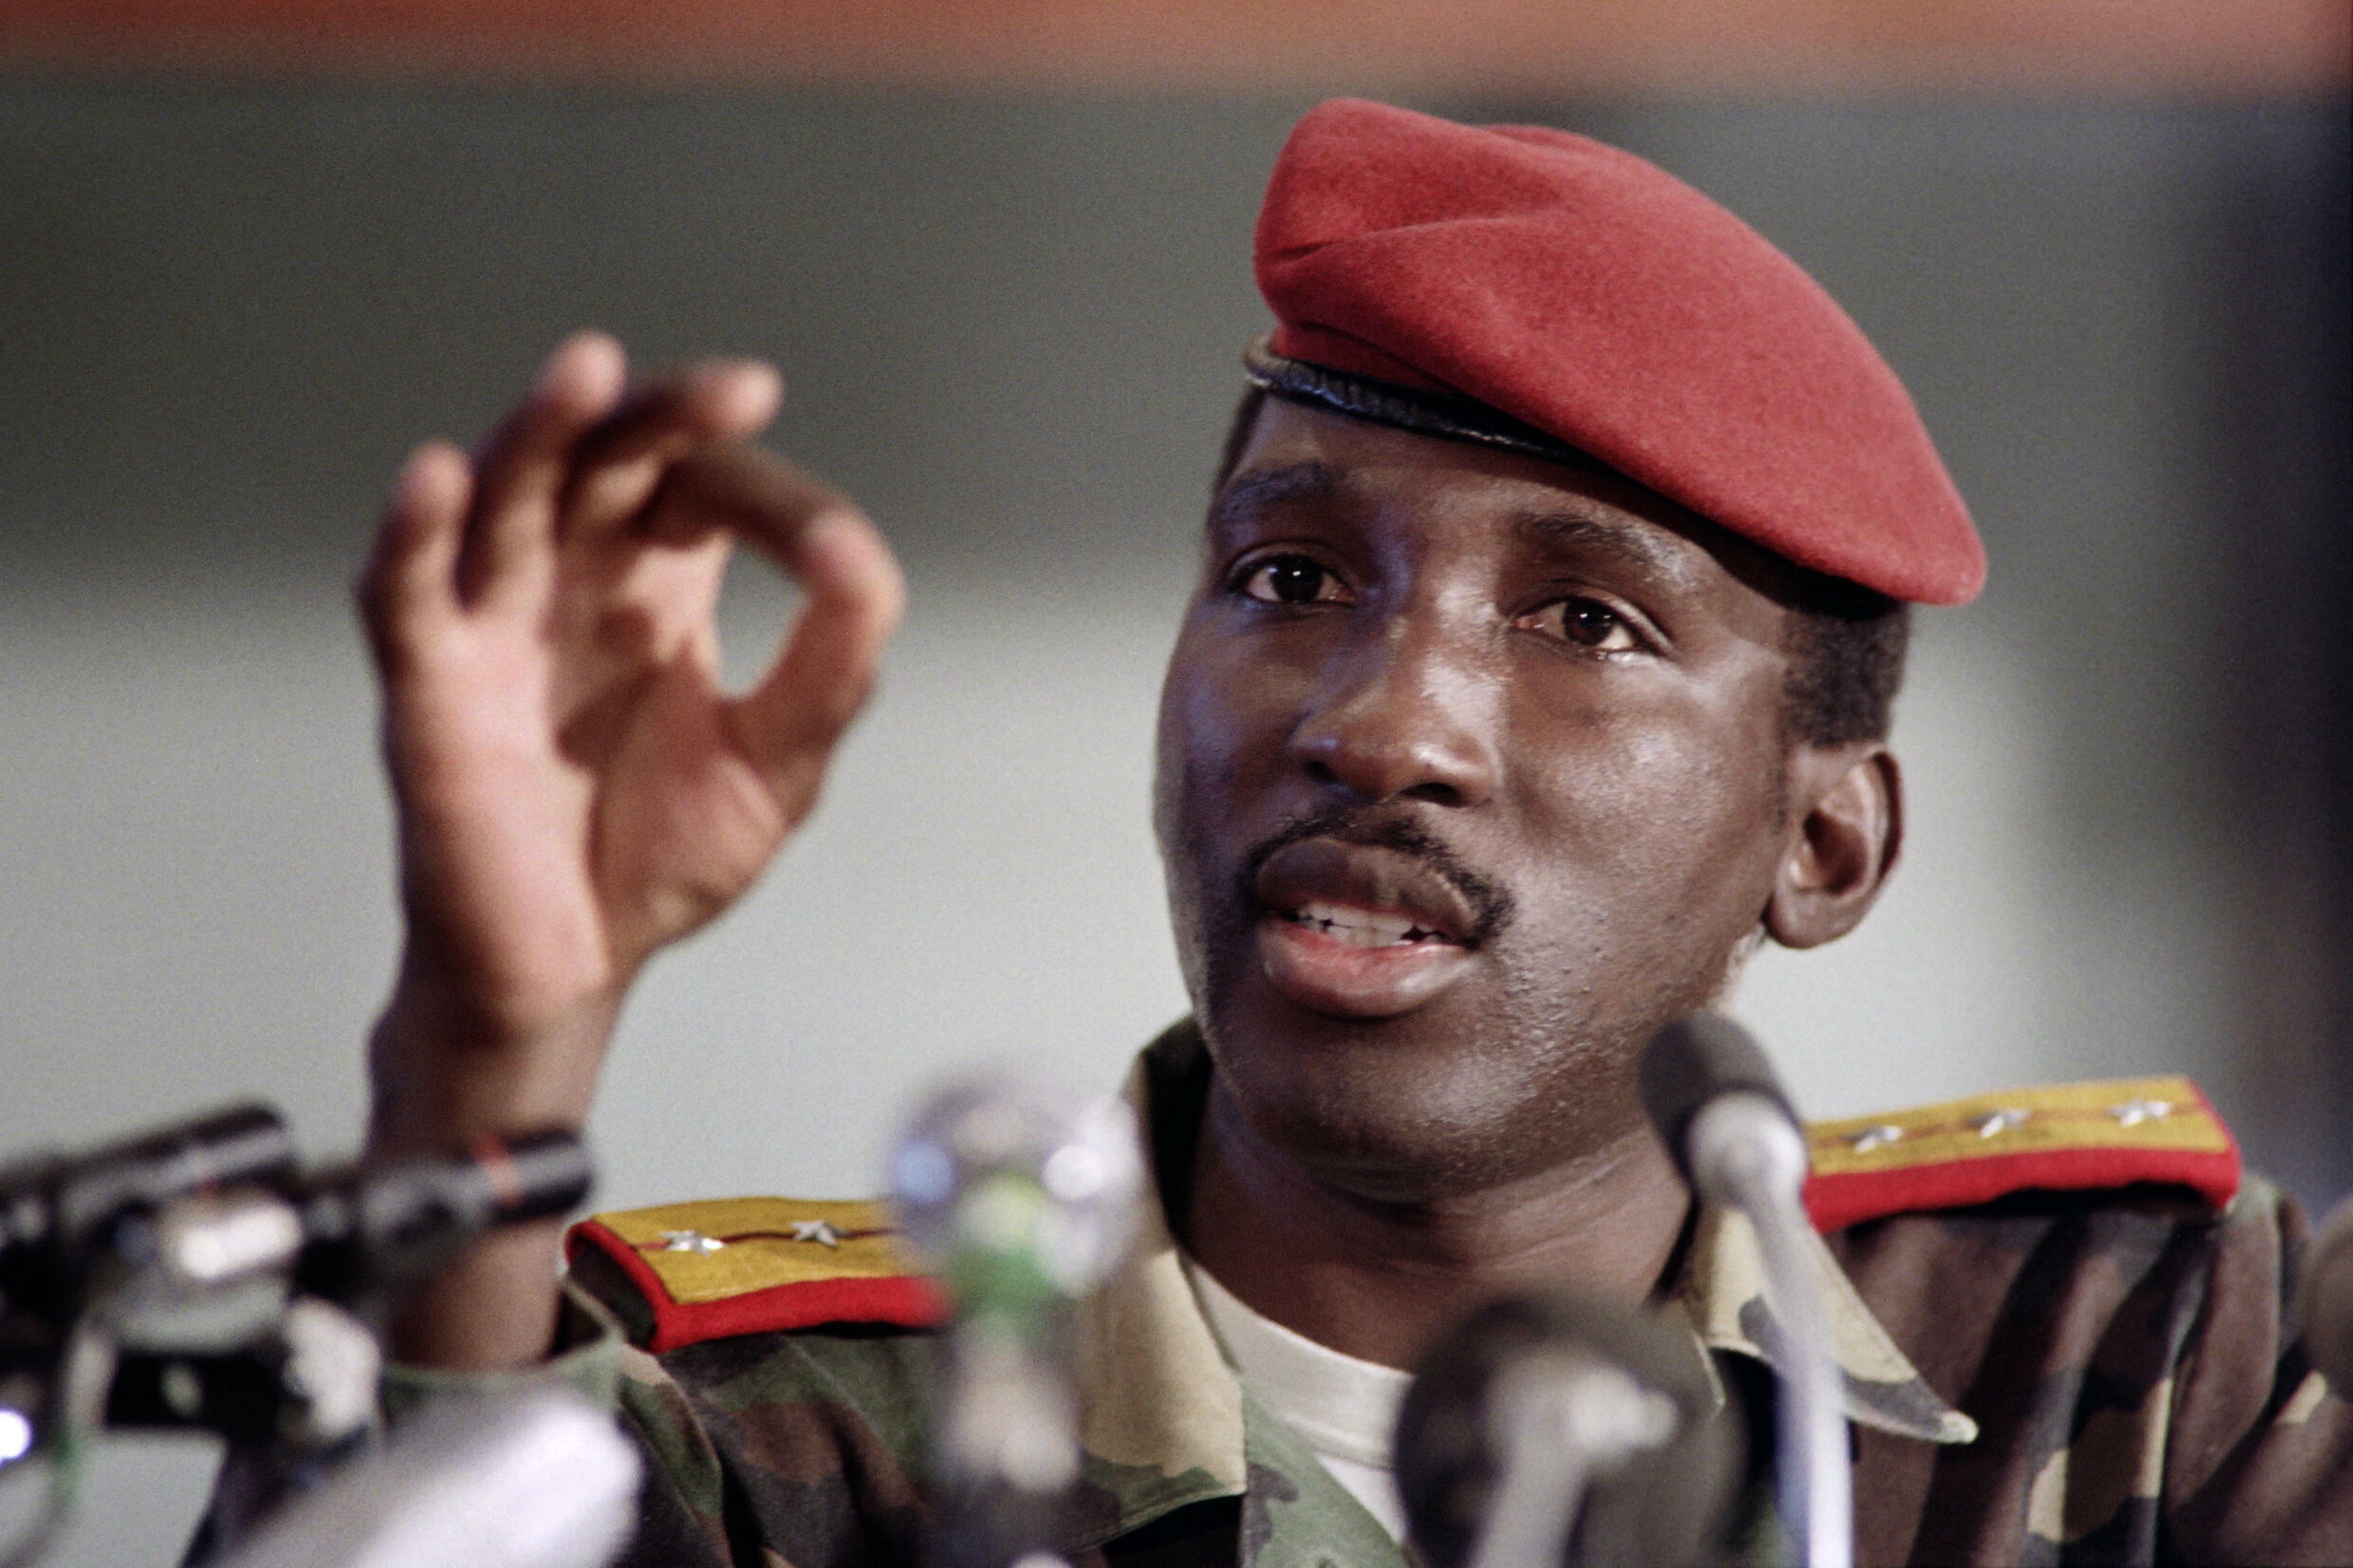 The killing of Sankara, an icon of pan-Africanism, has long cast a shadow over Burkina Faso